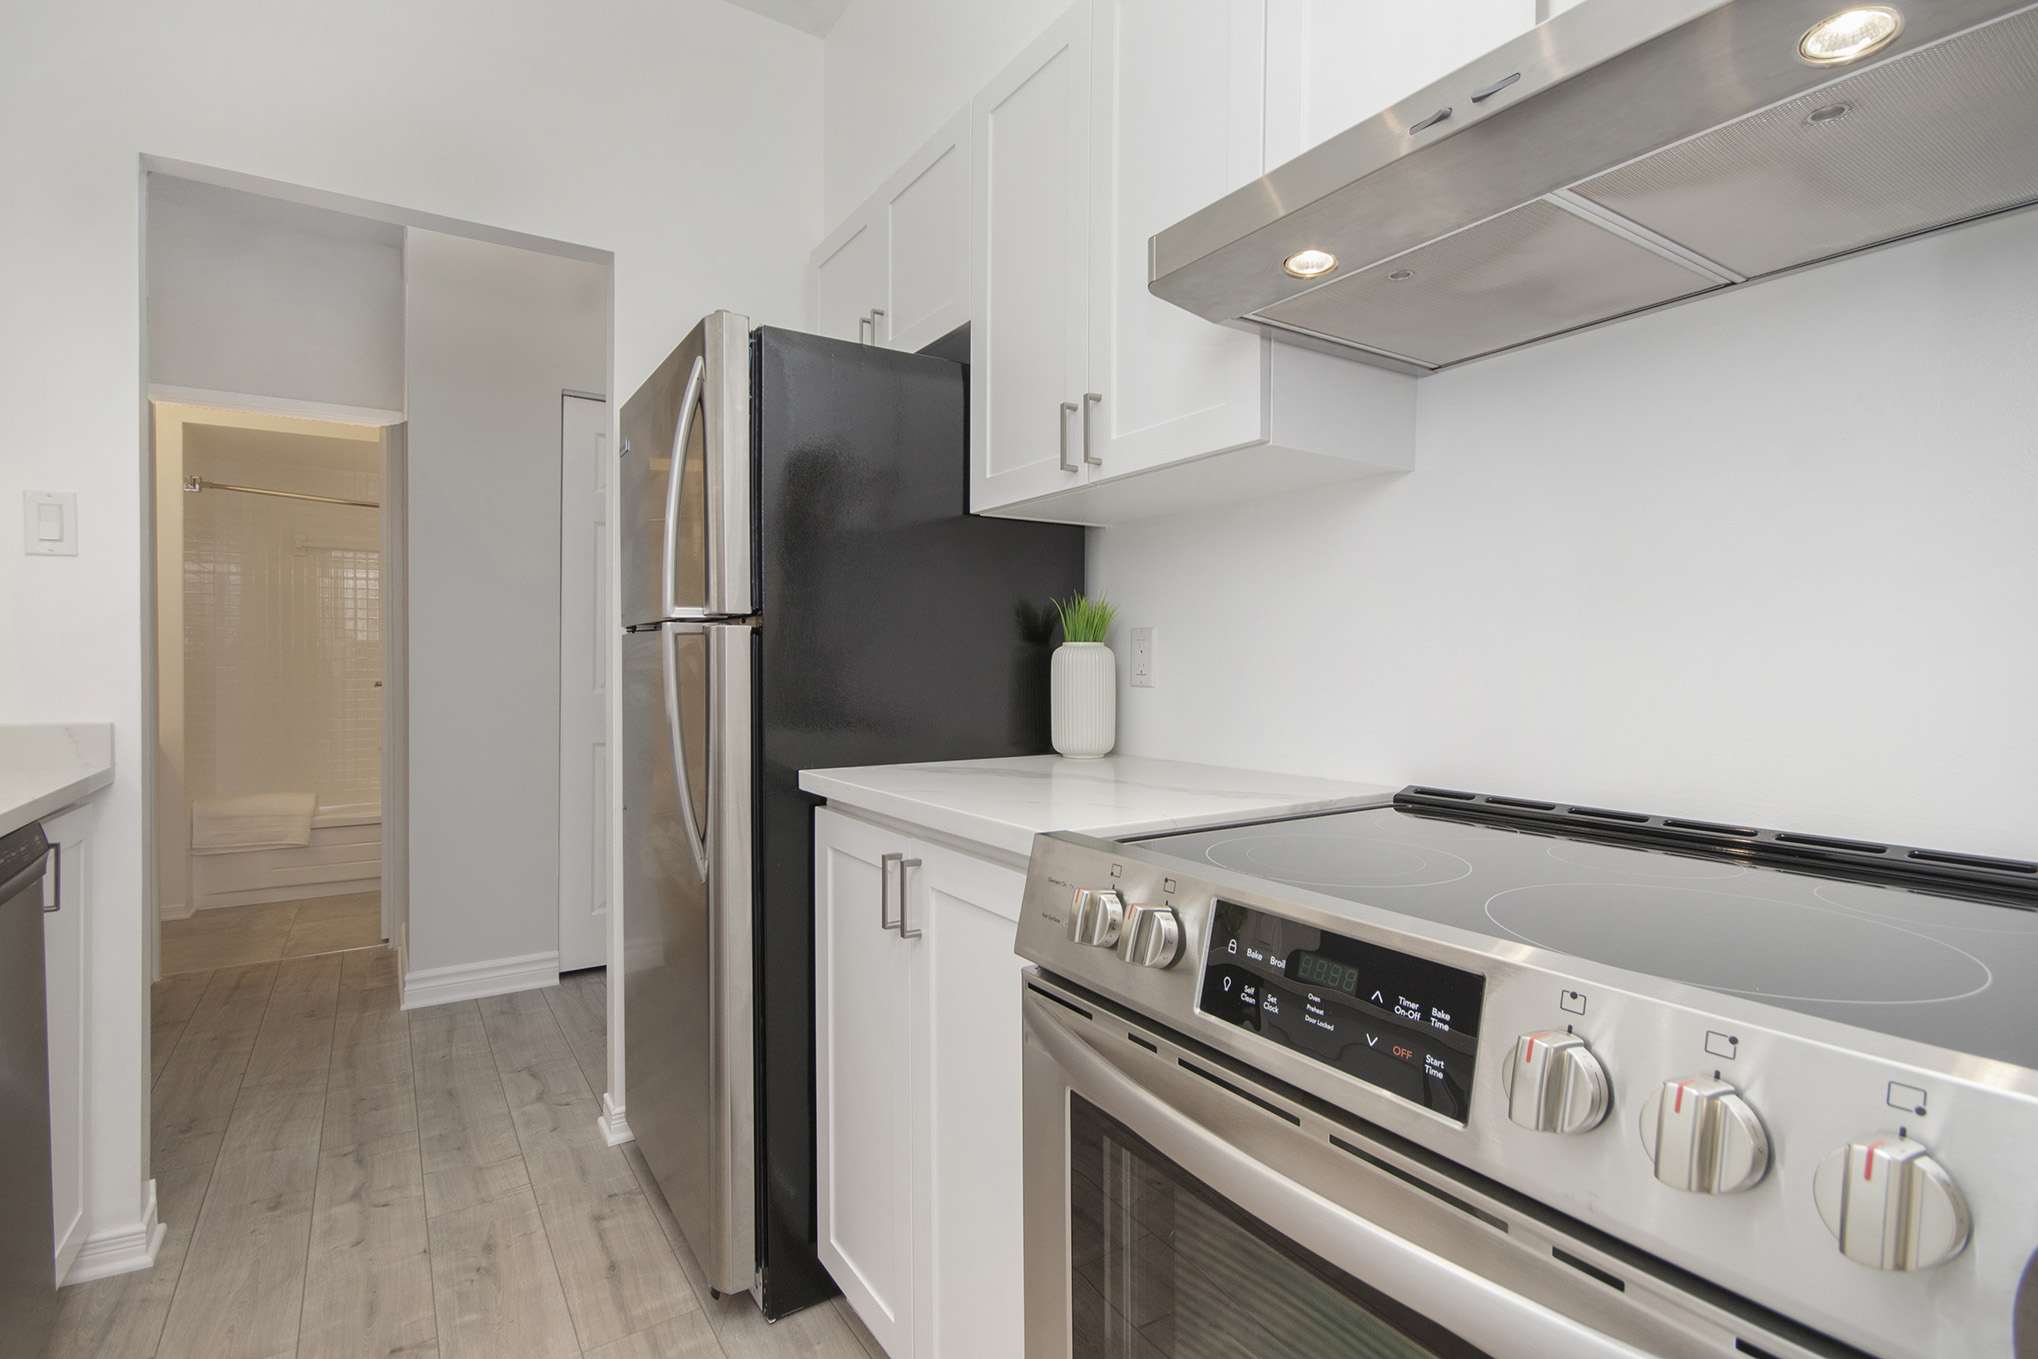 This stunning 1 bed, 1 bath unit is conveniently located at Laurier and Kent in Centretown. Close to LRT & steps away from it all! This unit is completely reno'd with high end finishes